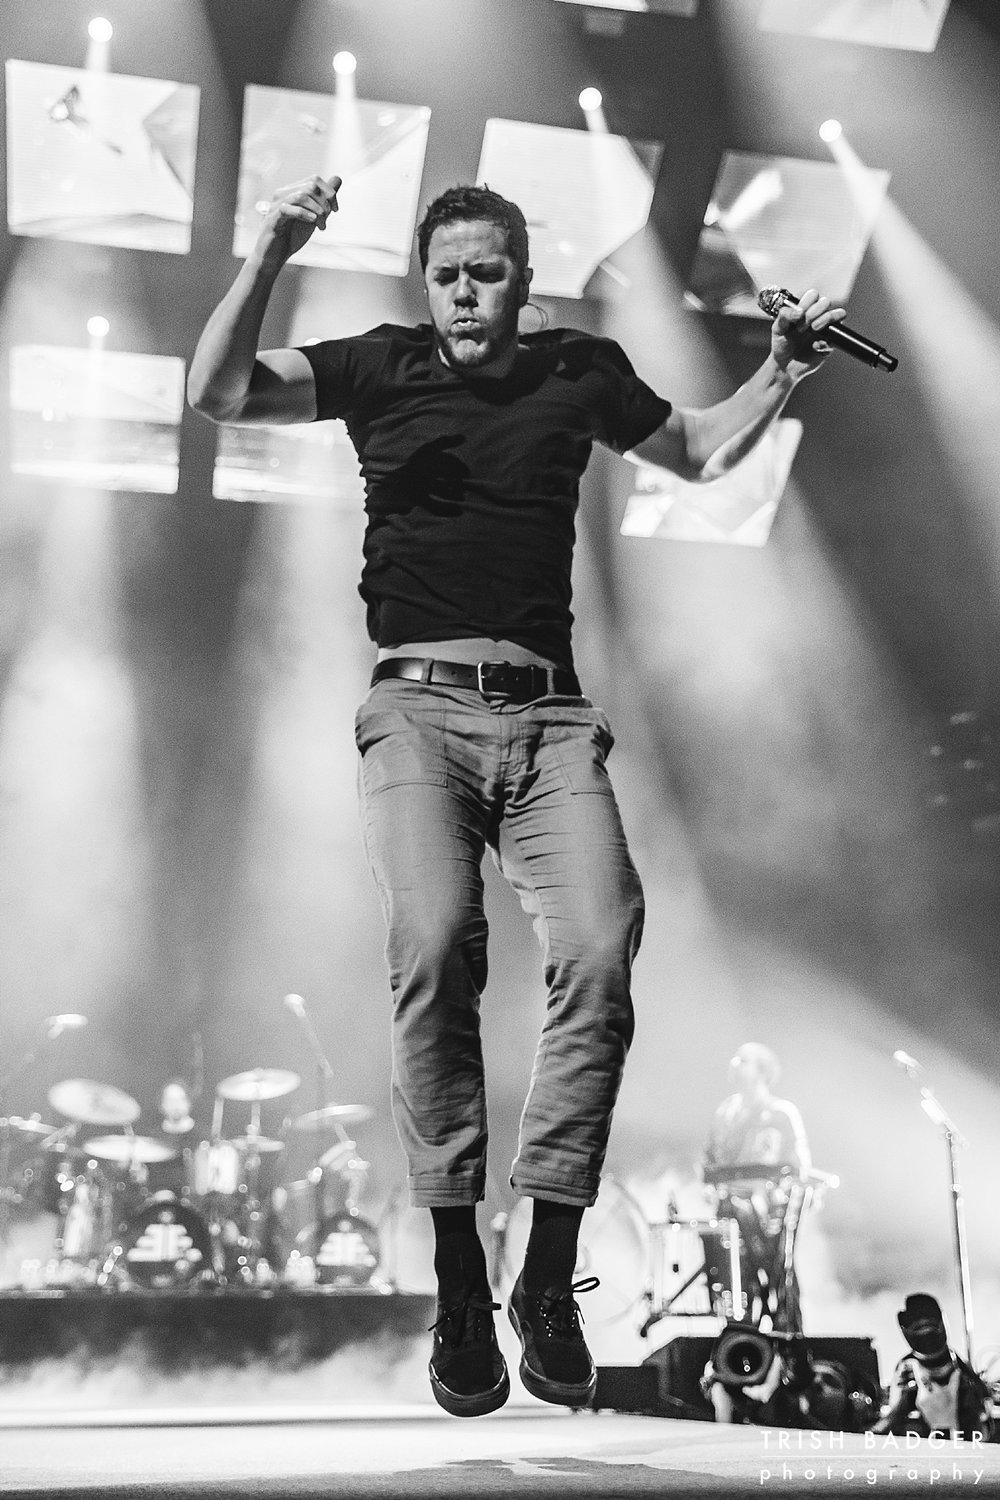 ImagineDragons_0026.jpg